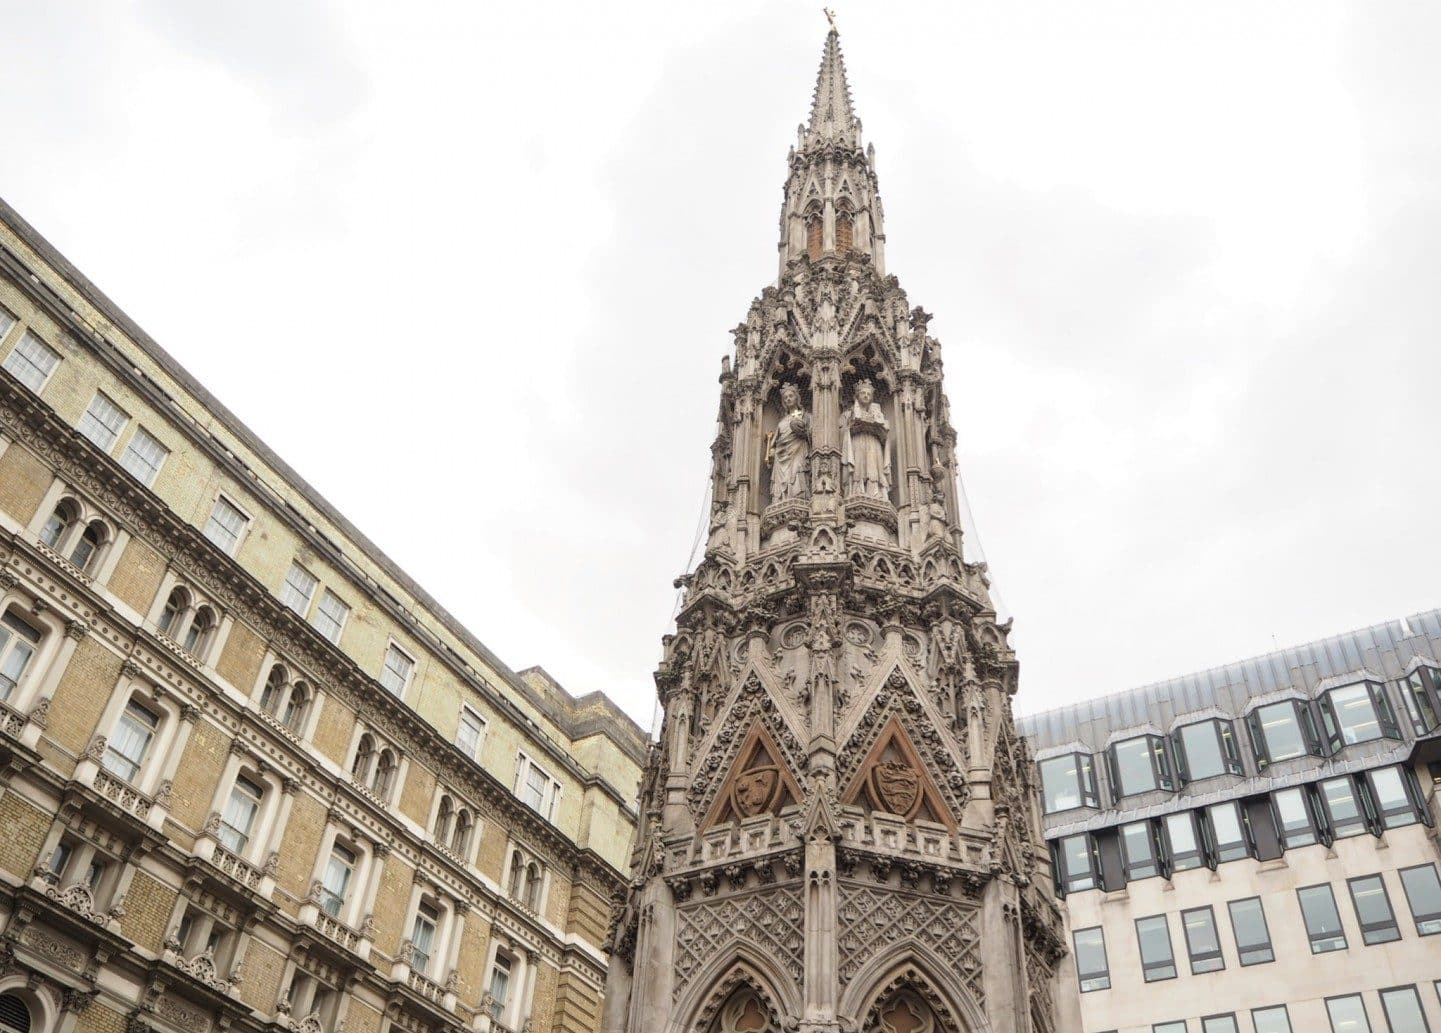 The Eleanor Cross of Charing Cross